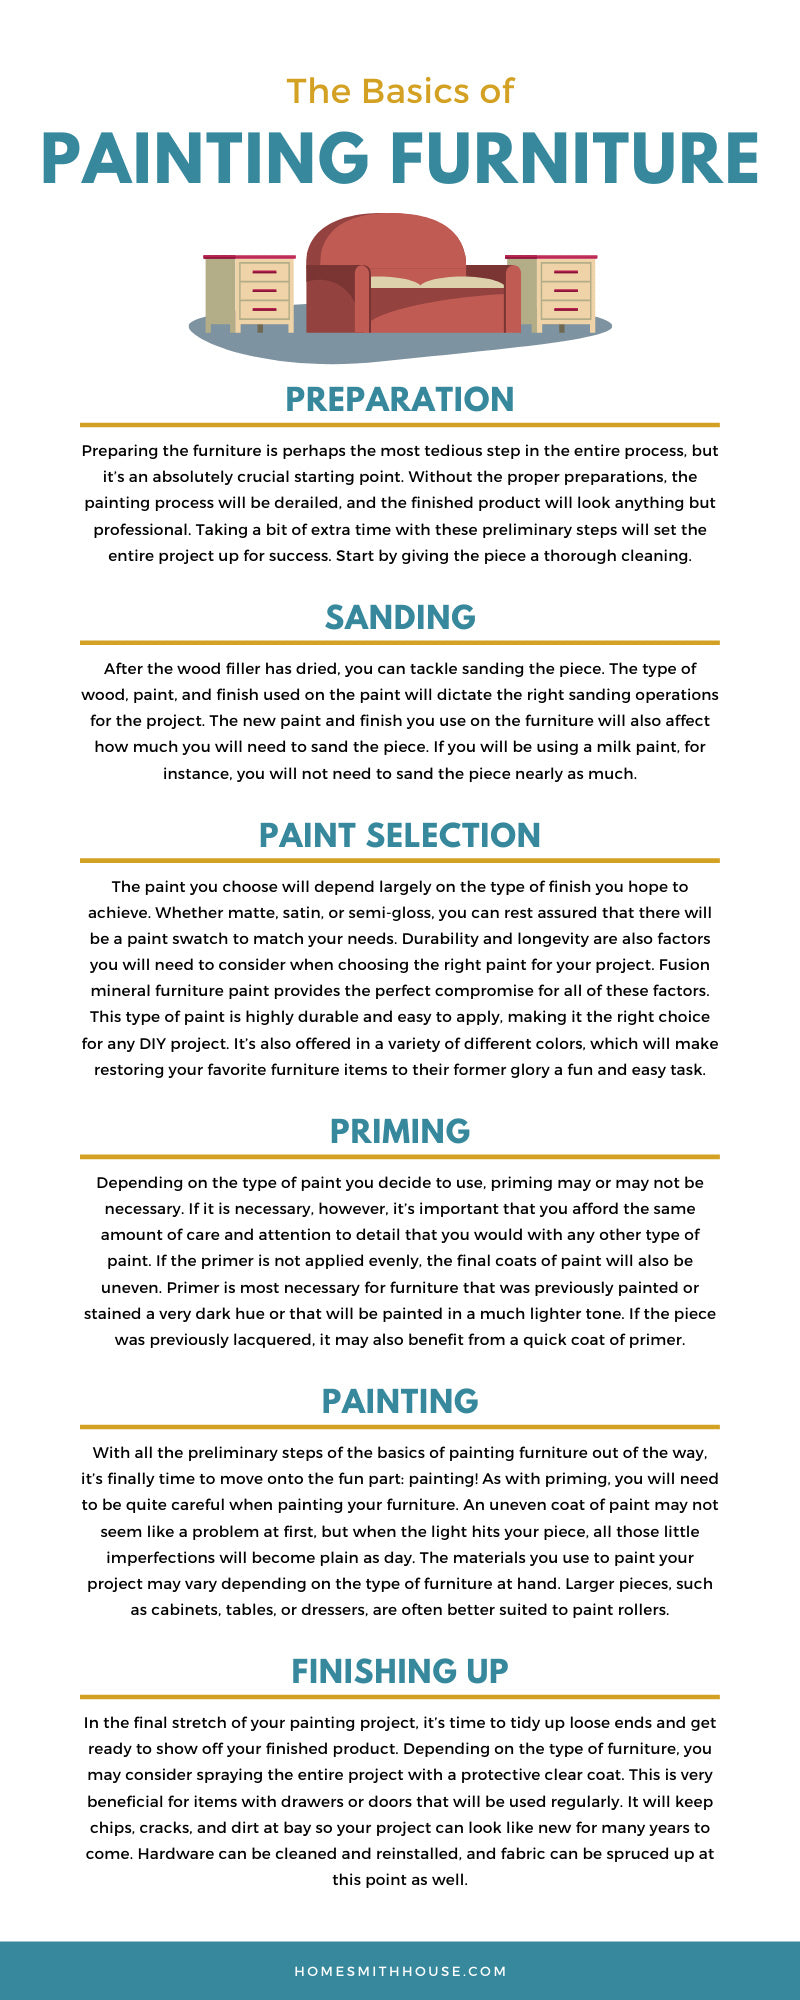 The Basics of Painting Furniture